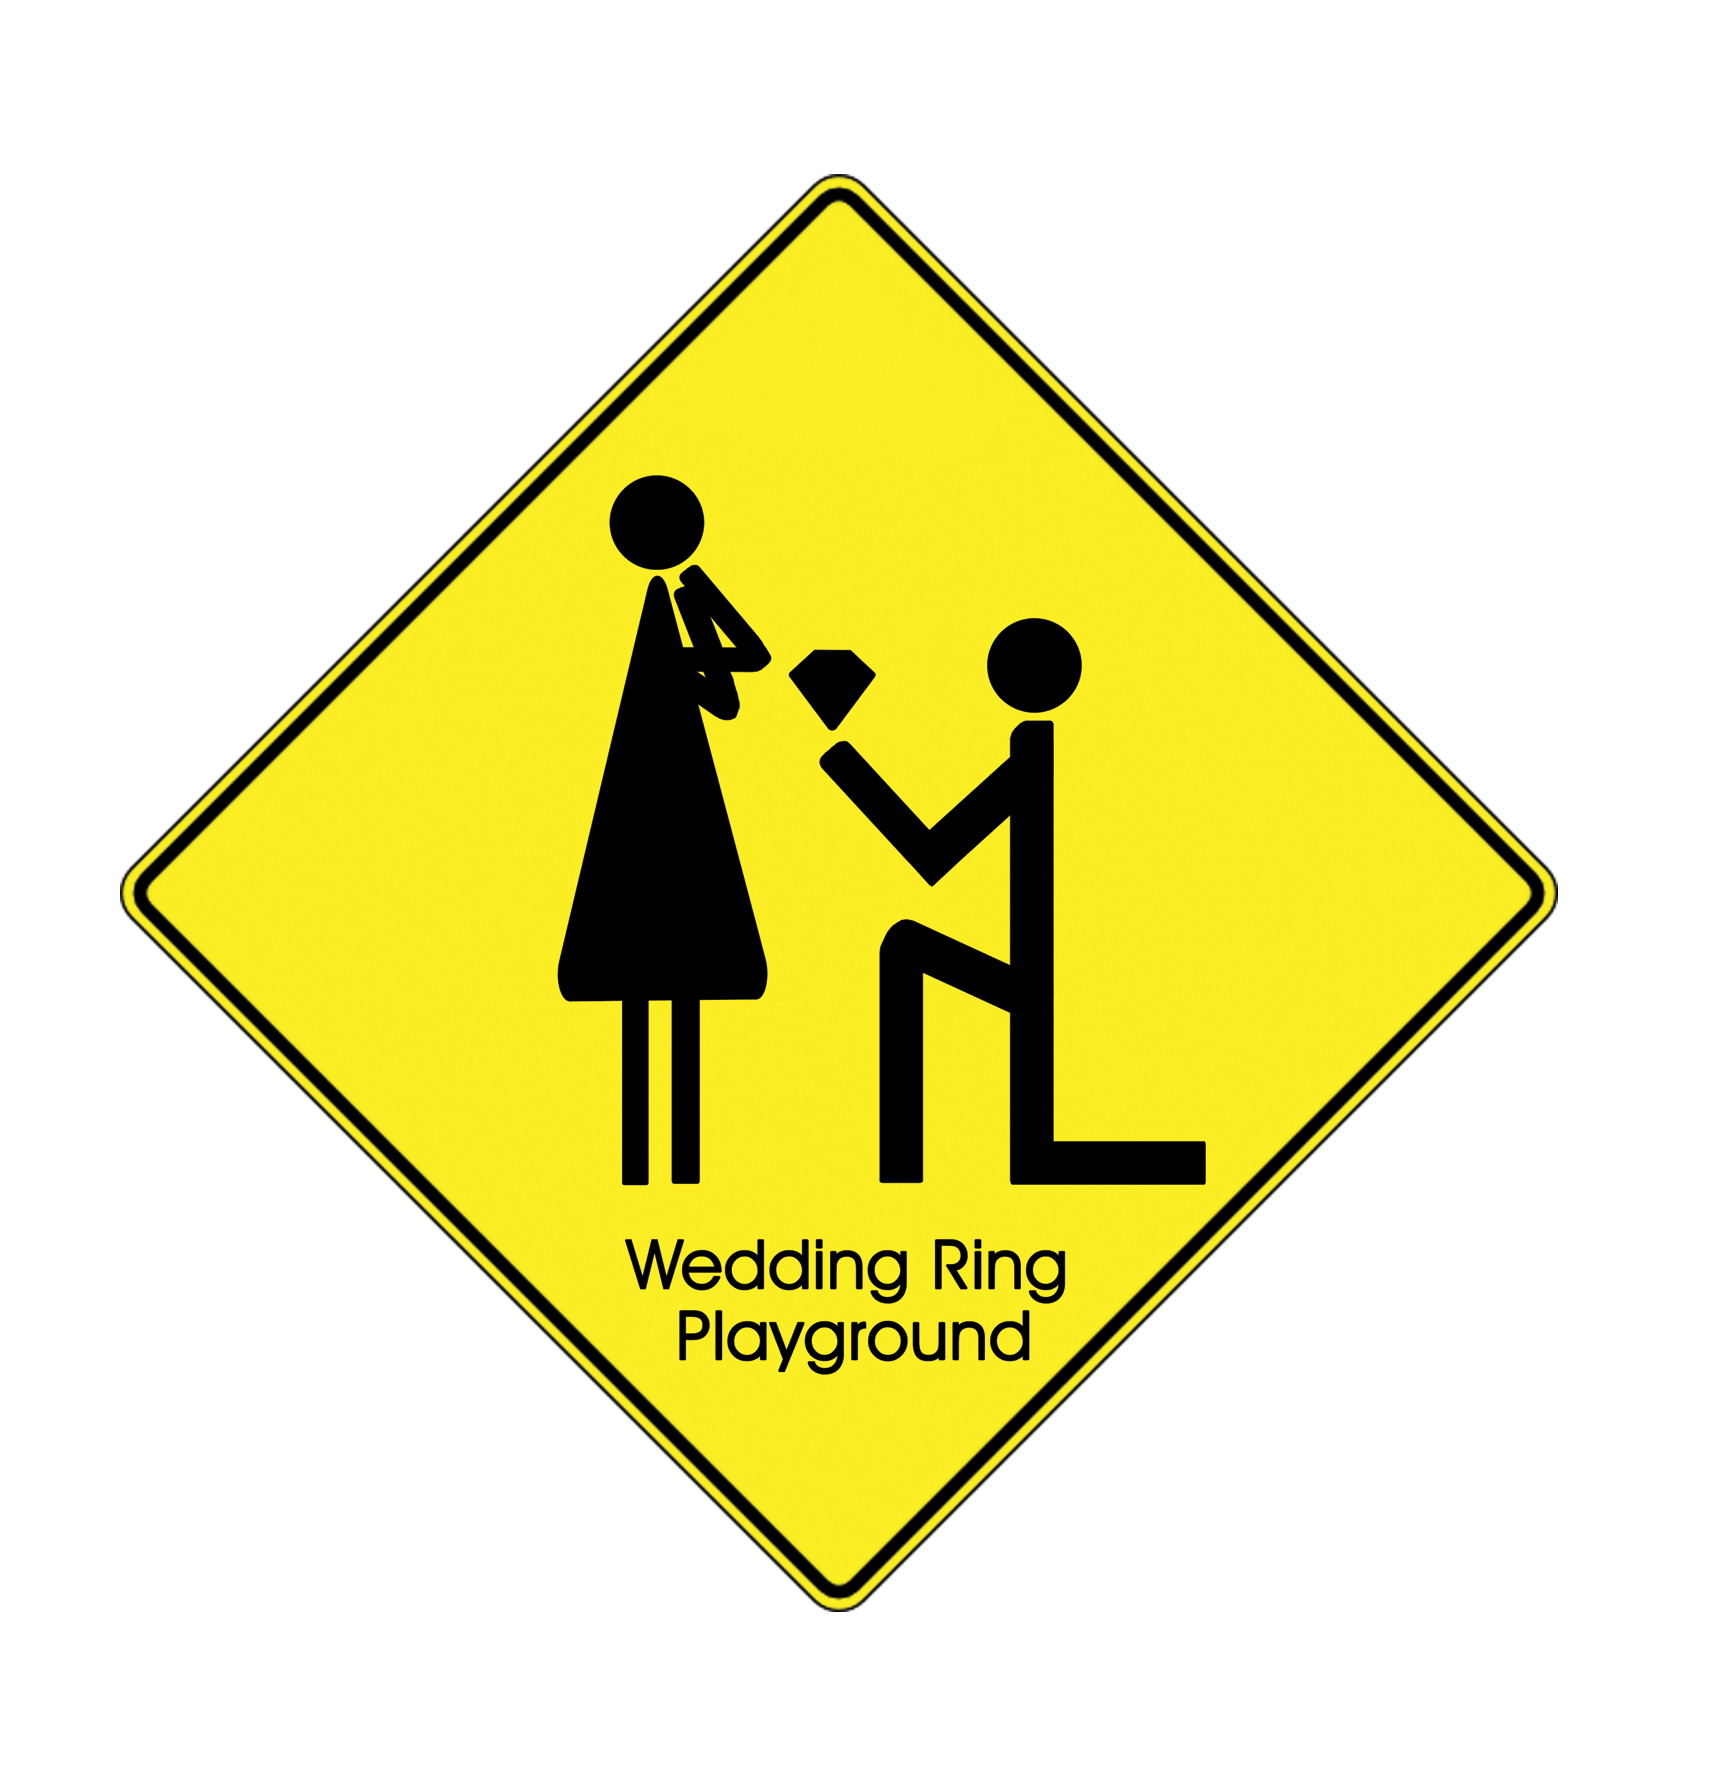 yellow road sign graphic with stick figure images of someone down on one knee proposing